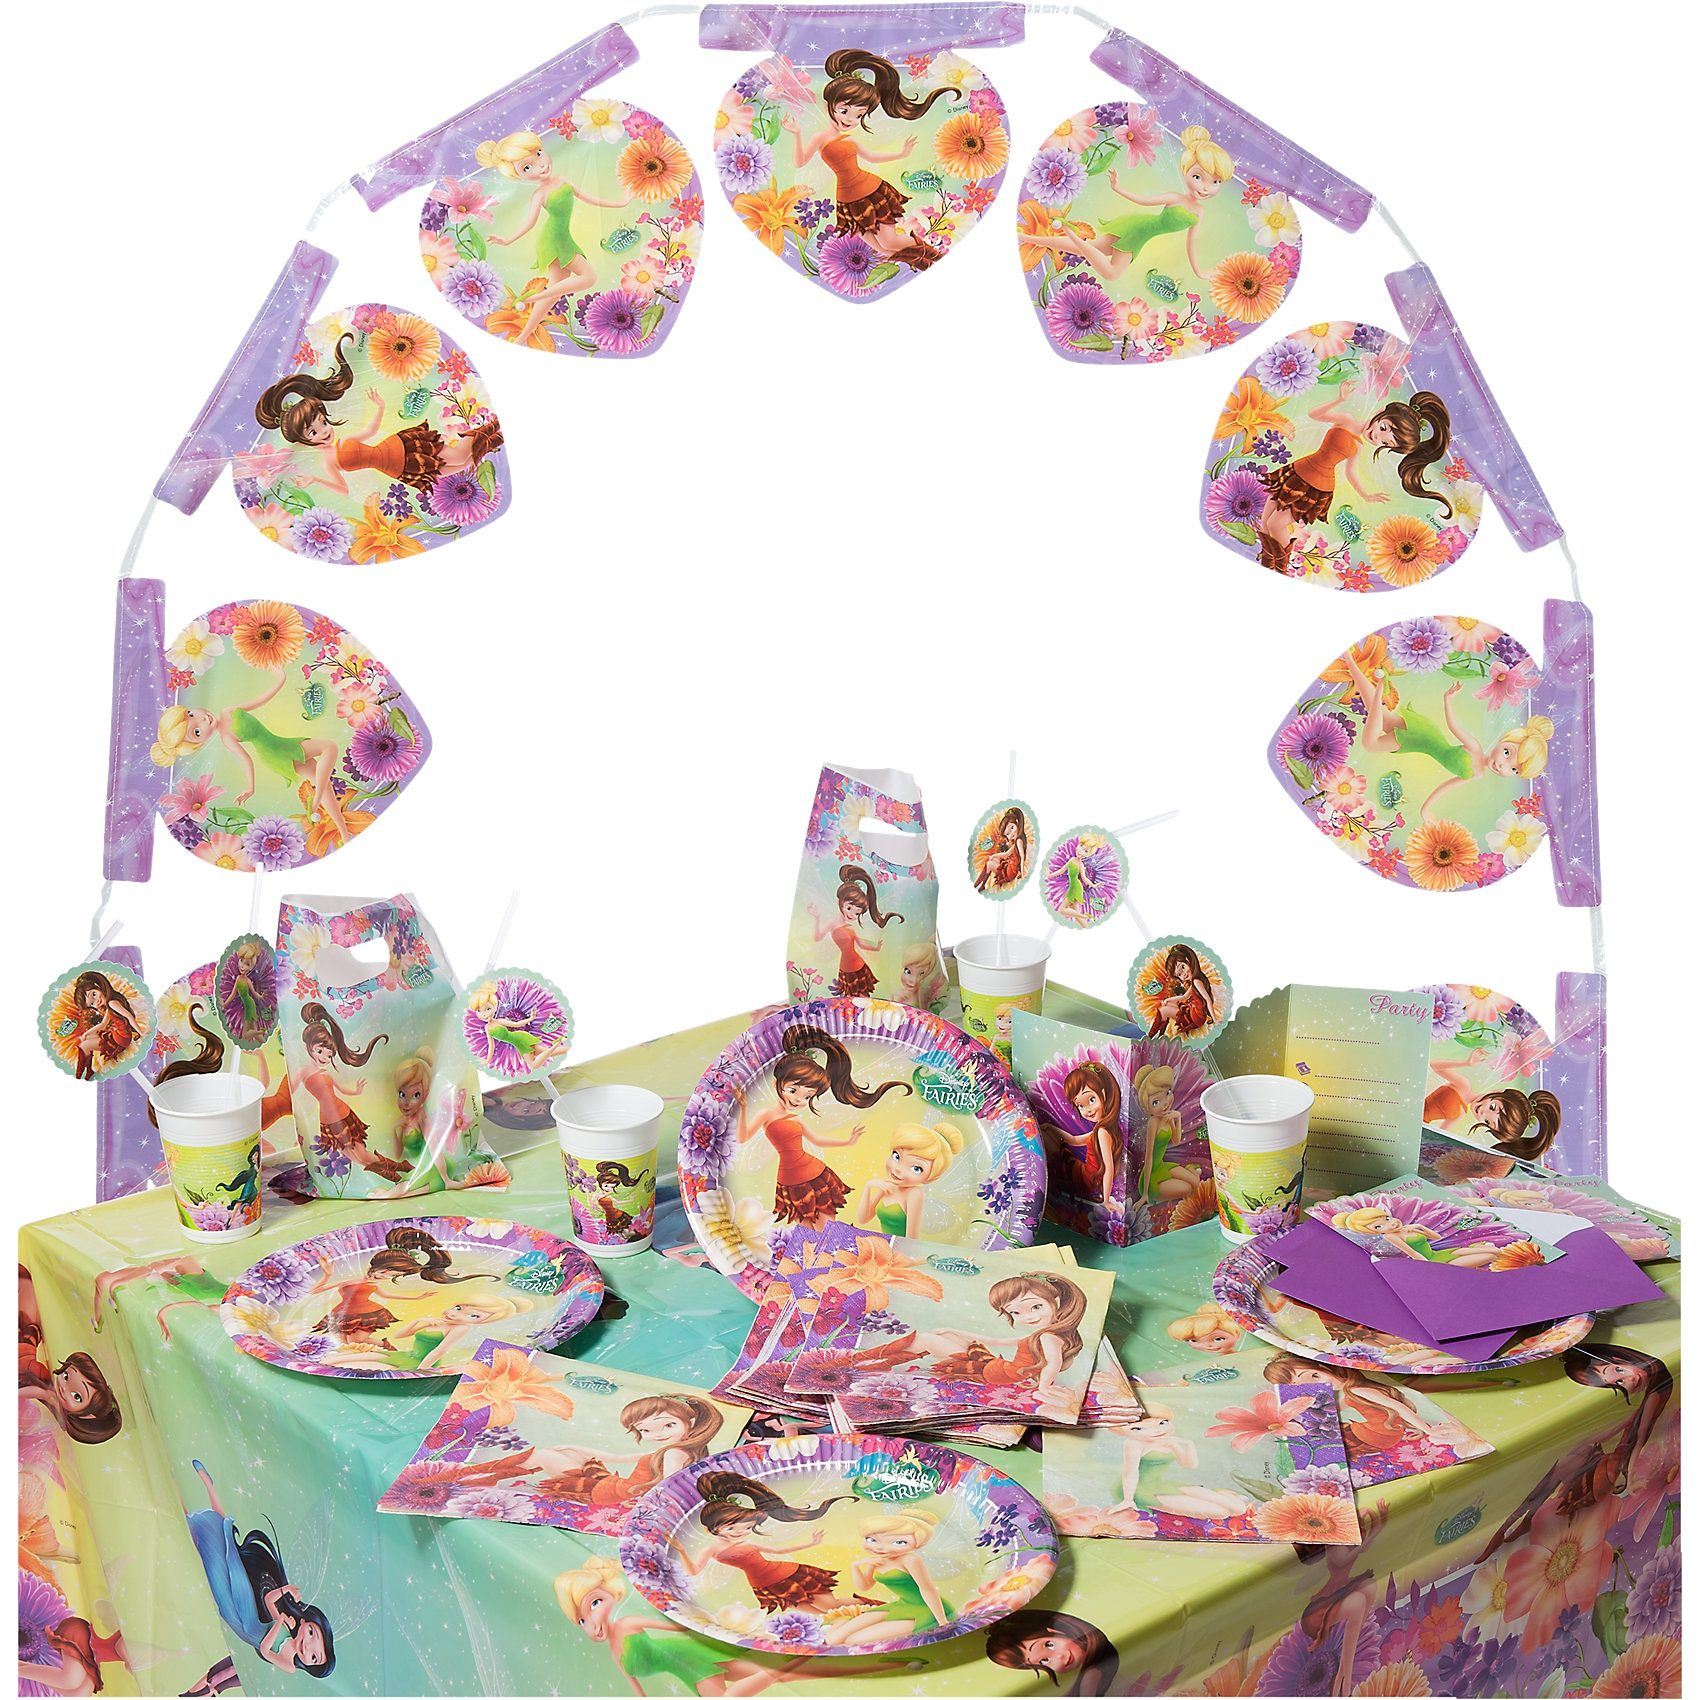 Procos Partyset Fairies Magic, 56-tlg.